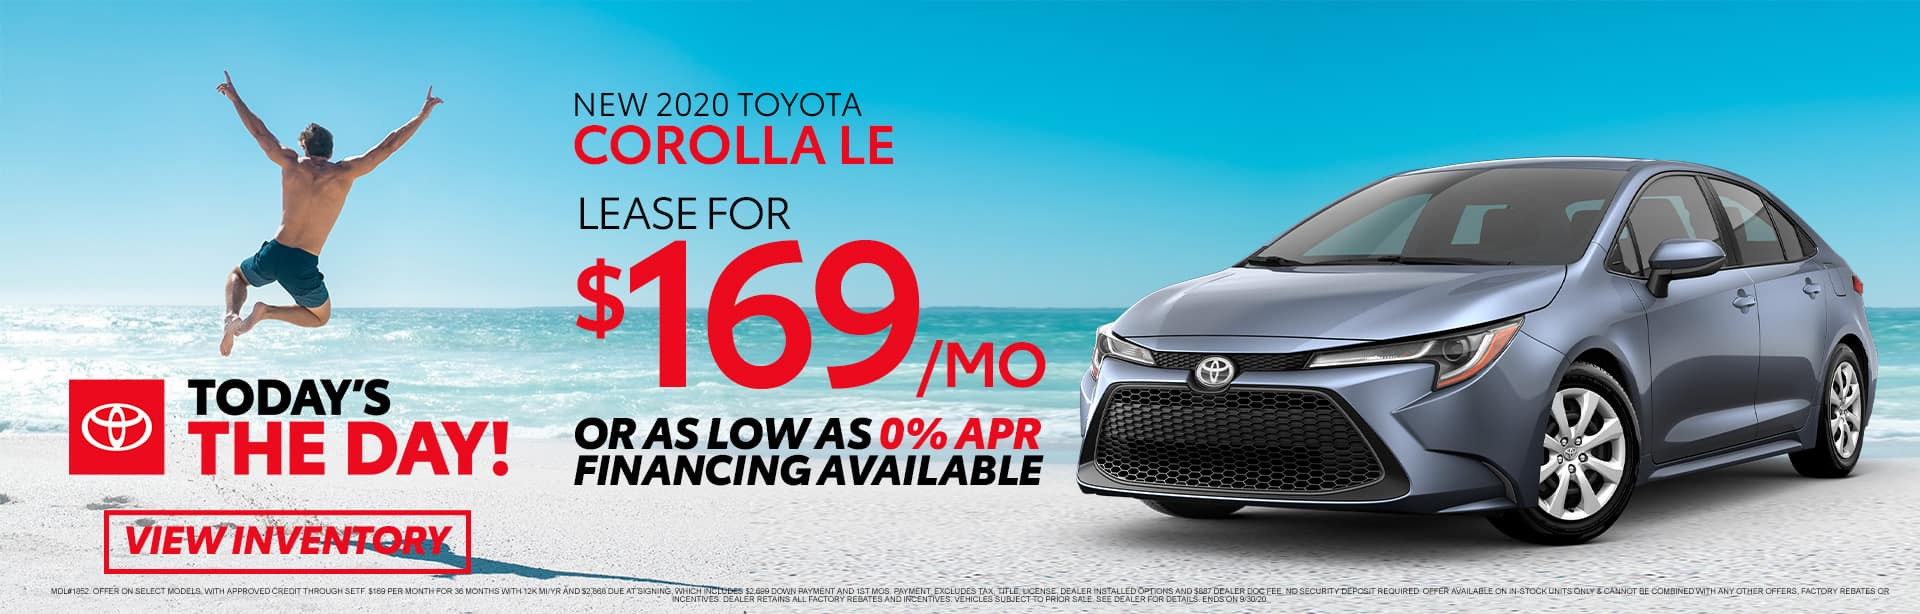 New 2020 Toyota Corolla at Toyota of Fort Walton Beach!